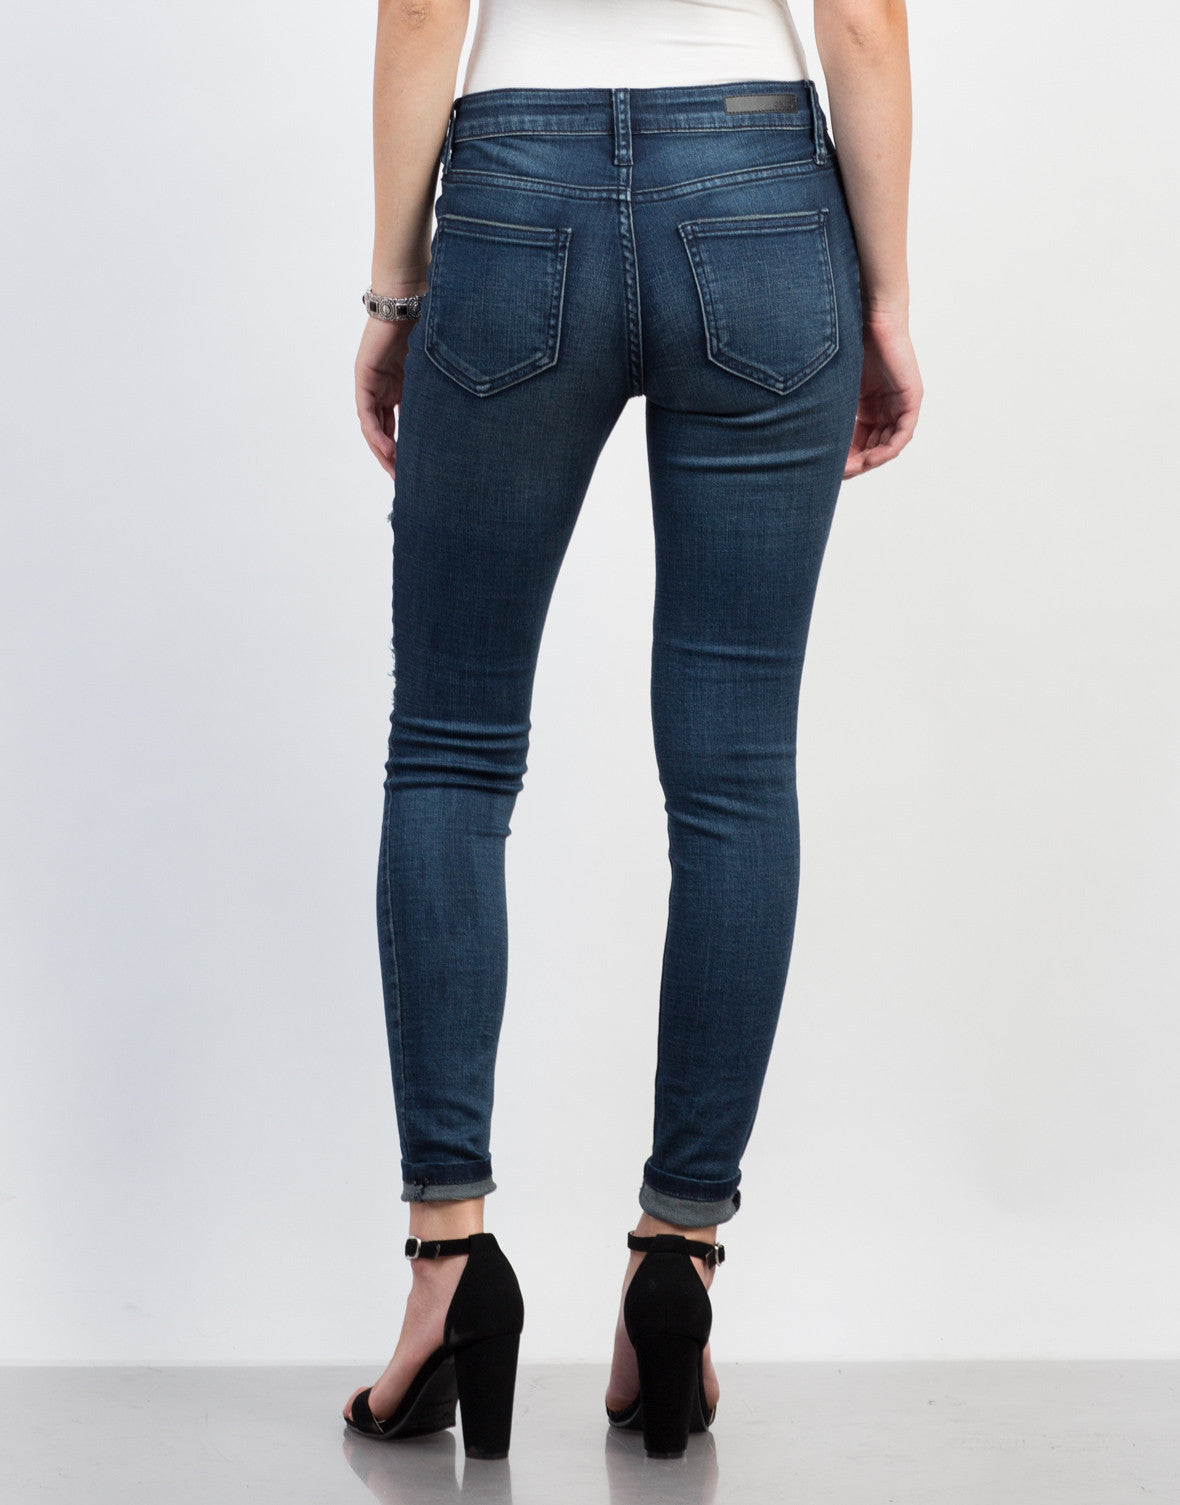 Back View of Midnight Skinny Blue Jeans